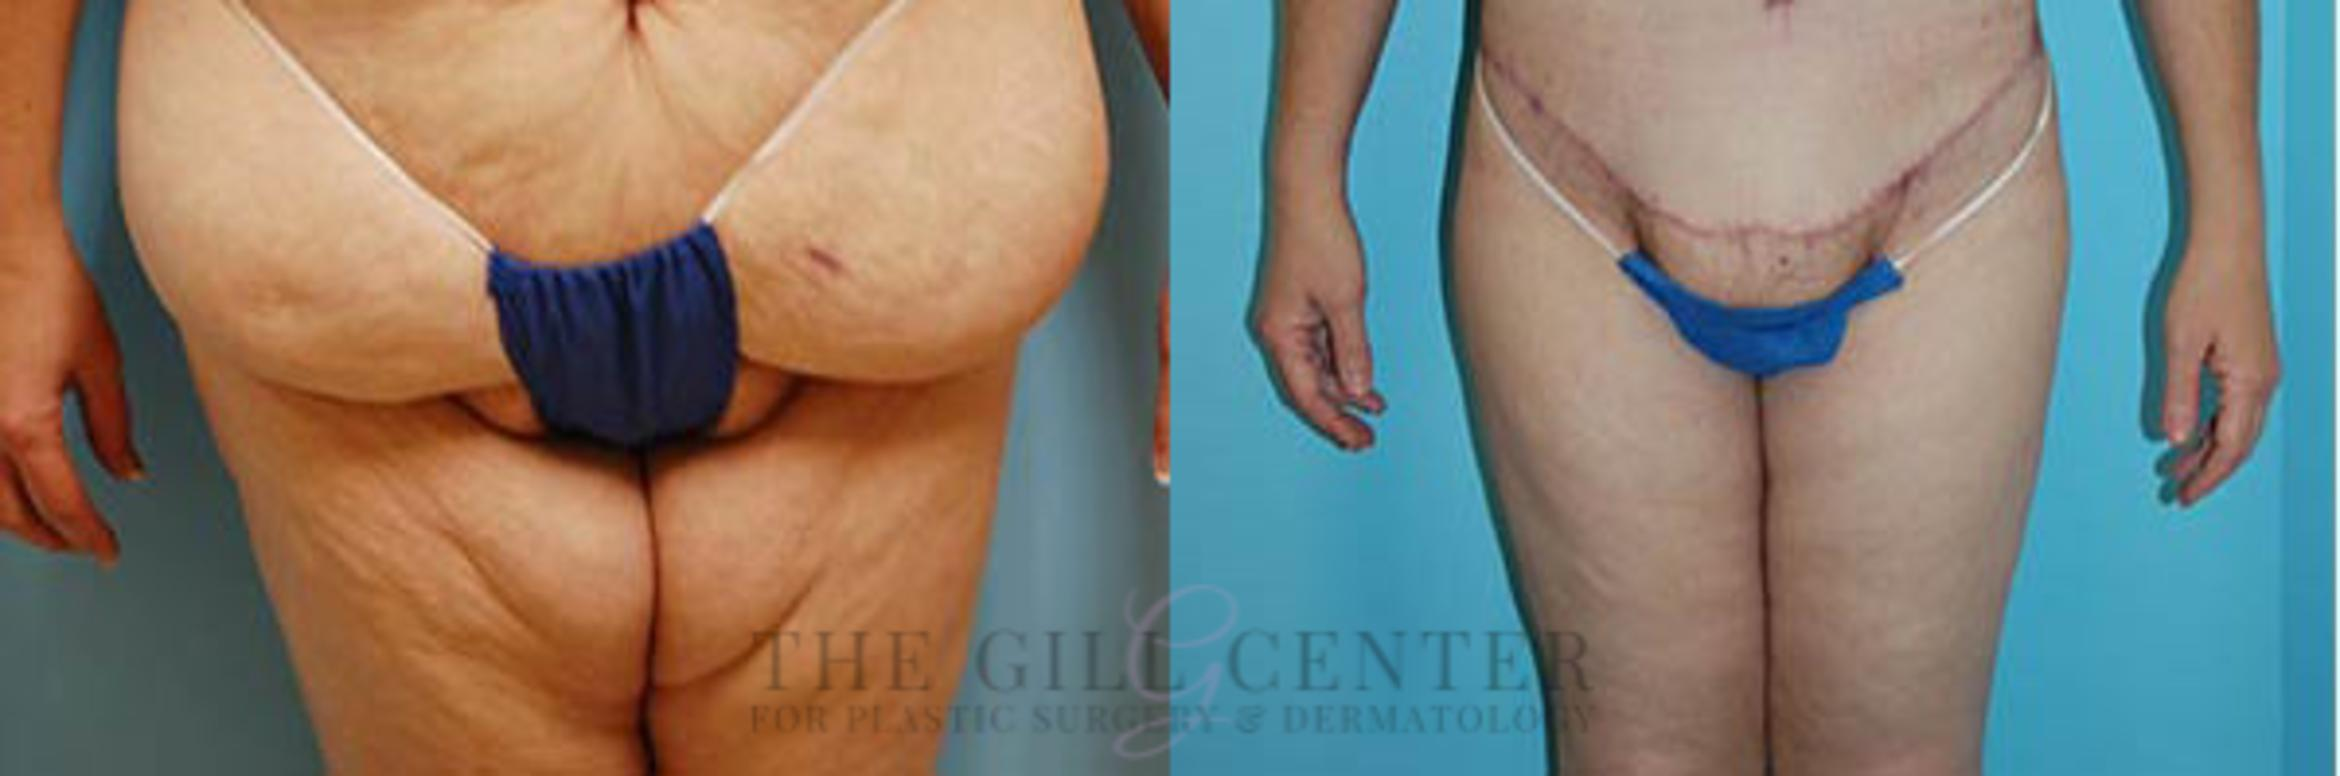 Thigh Lift Case 169 Before & After Front | Shenandoah, TX | The Gill Center for Plastic Surgery and Dermatology